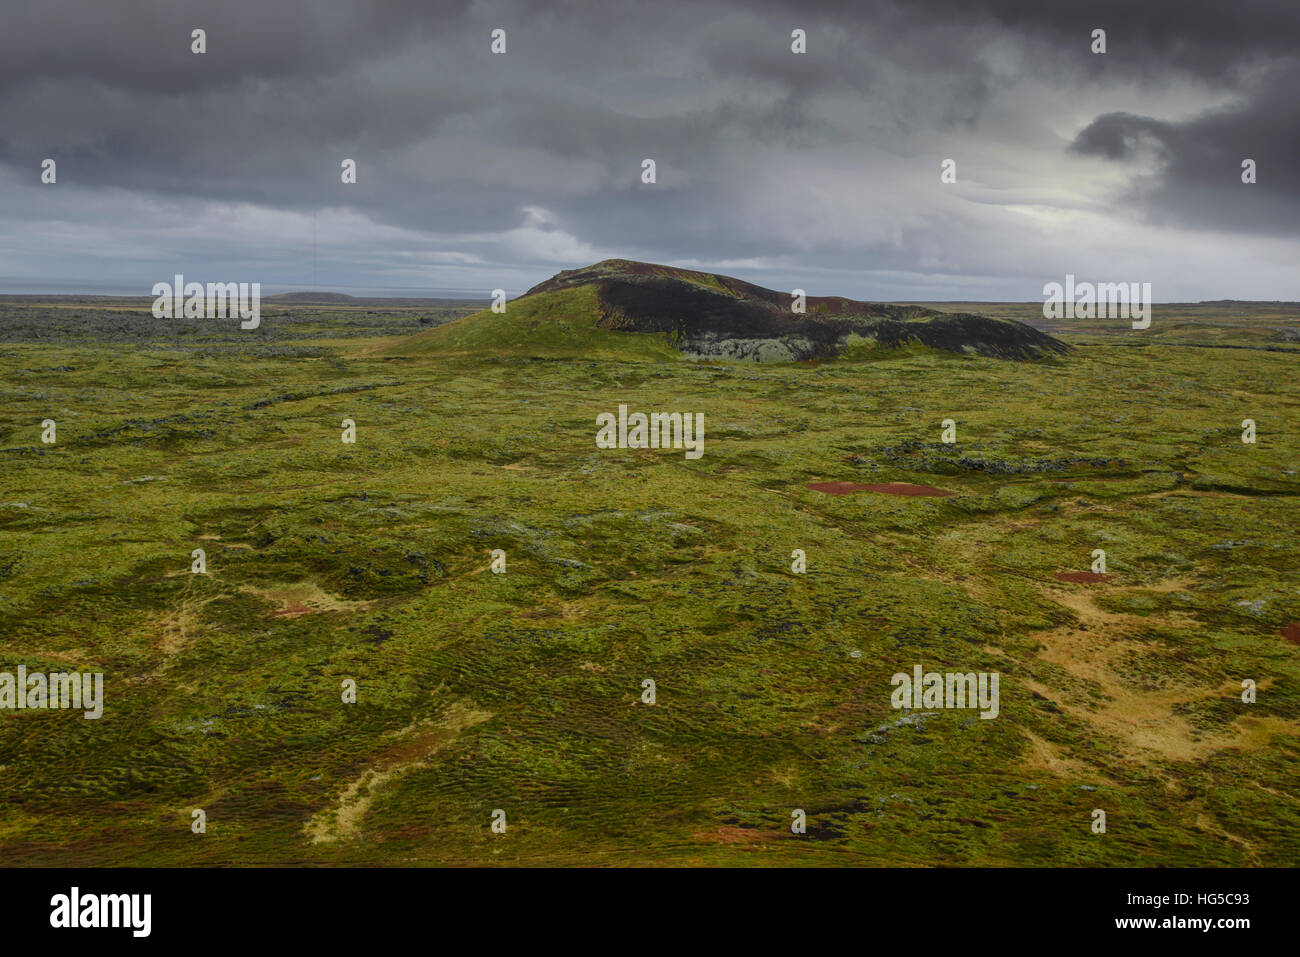 Volcanic crater and moss-covered lava fields on the Snaefellsness Peninsula, Iceland, Polar Regions - Stock Image